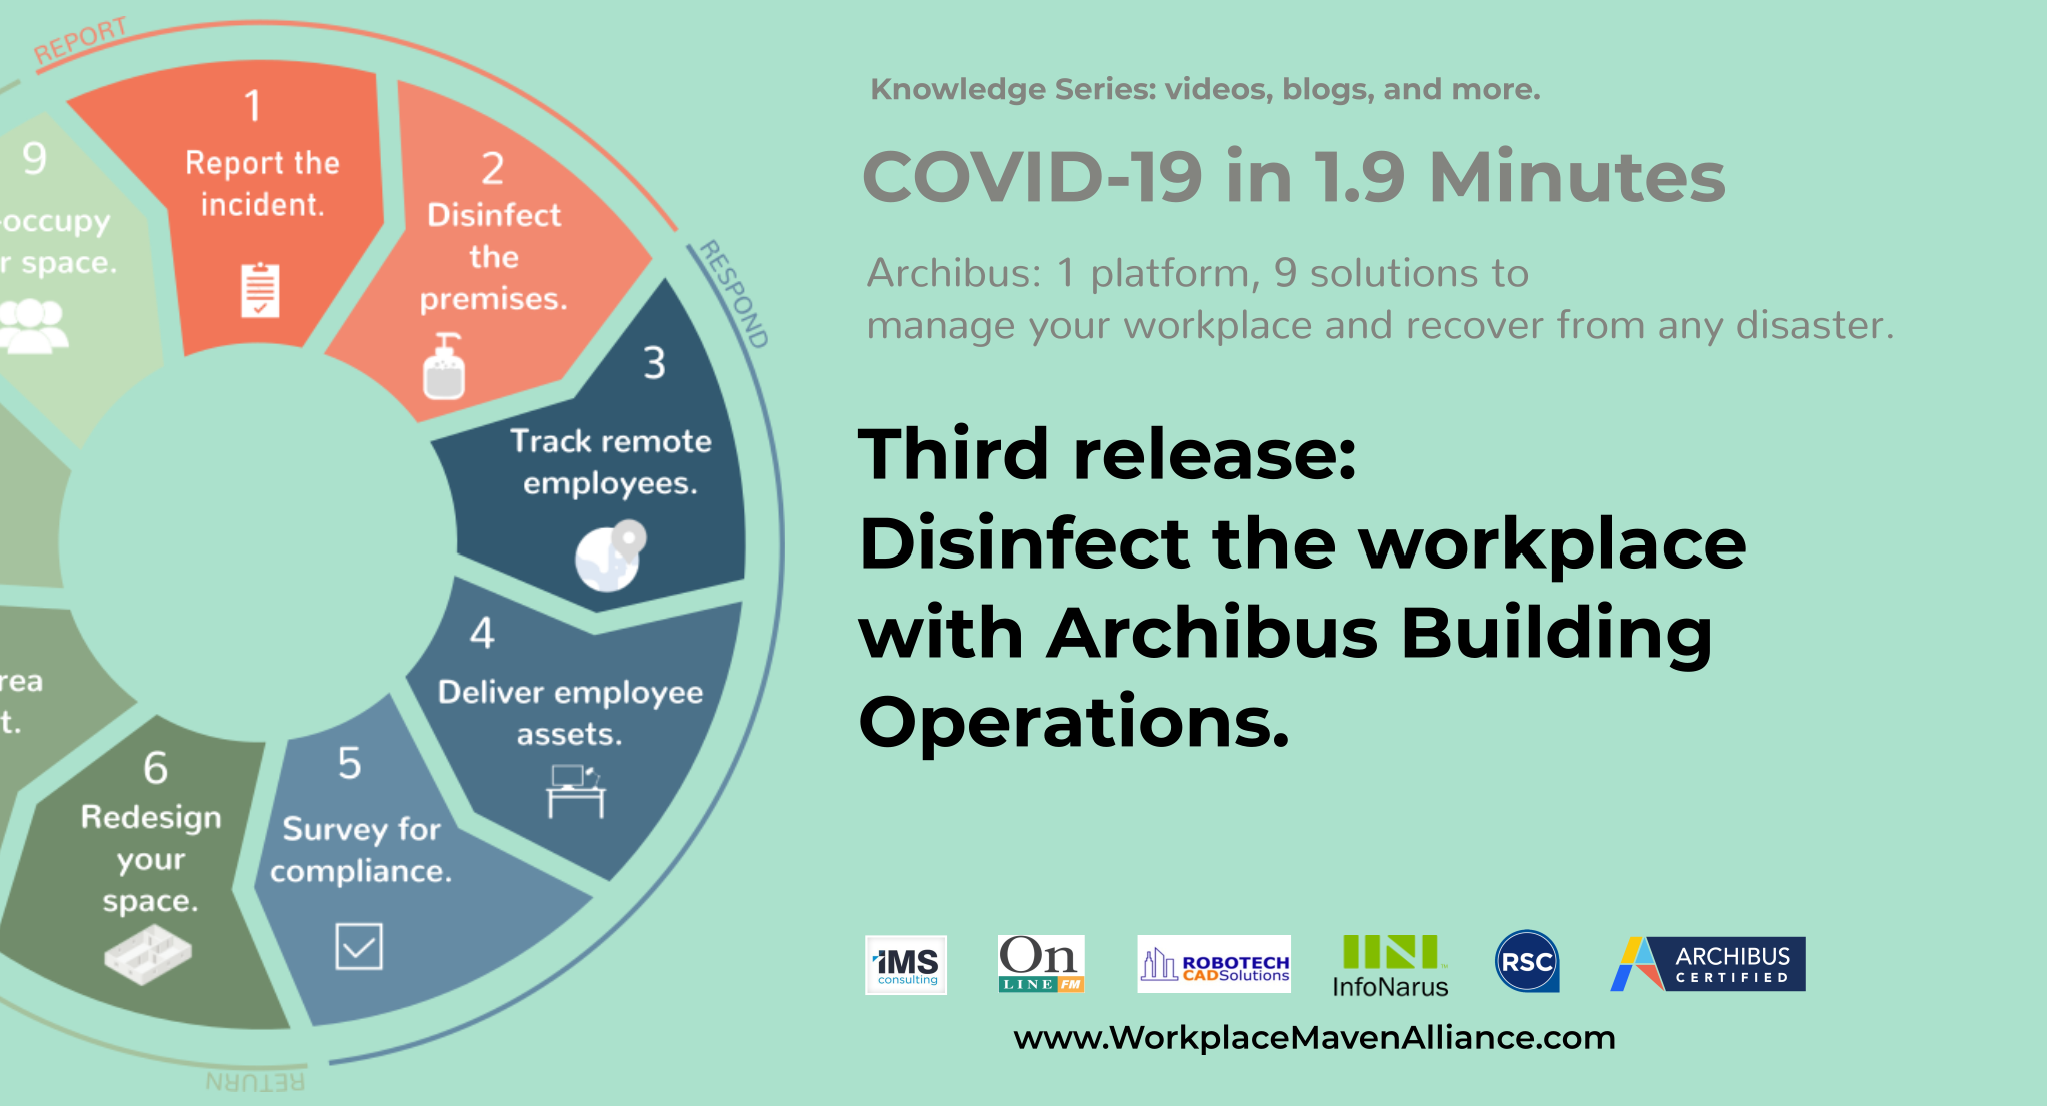 COVID-19 in 1.9 Minutes: Disinfect the workplace with Archibus Maintenance (Building Operations)